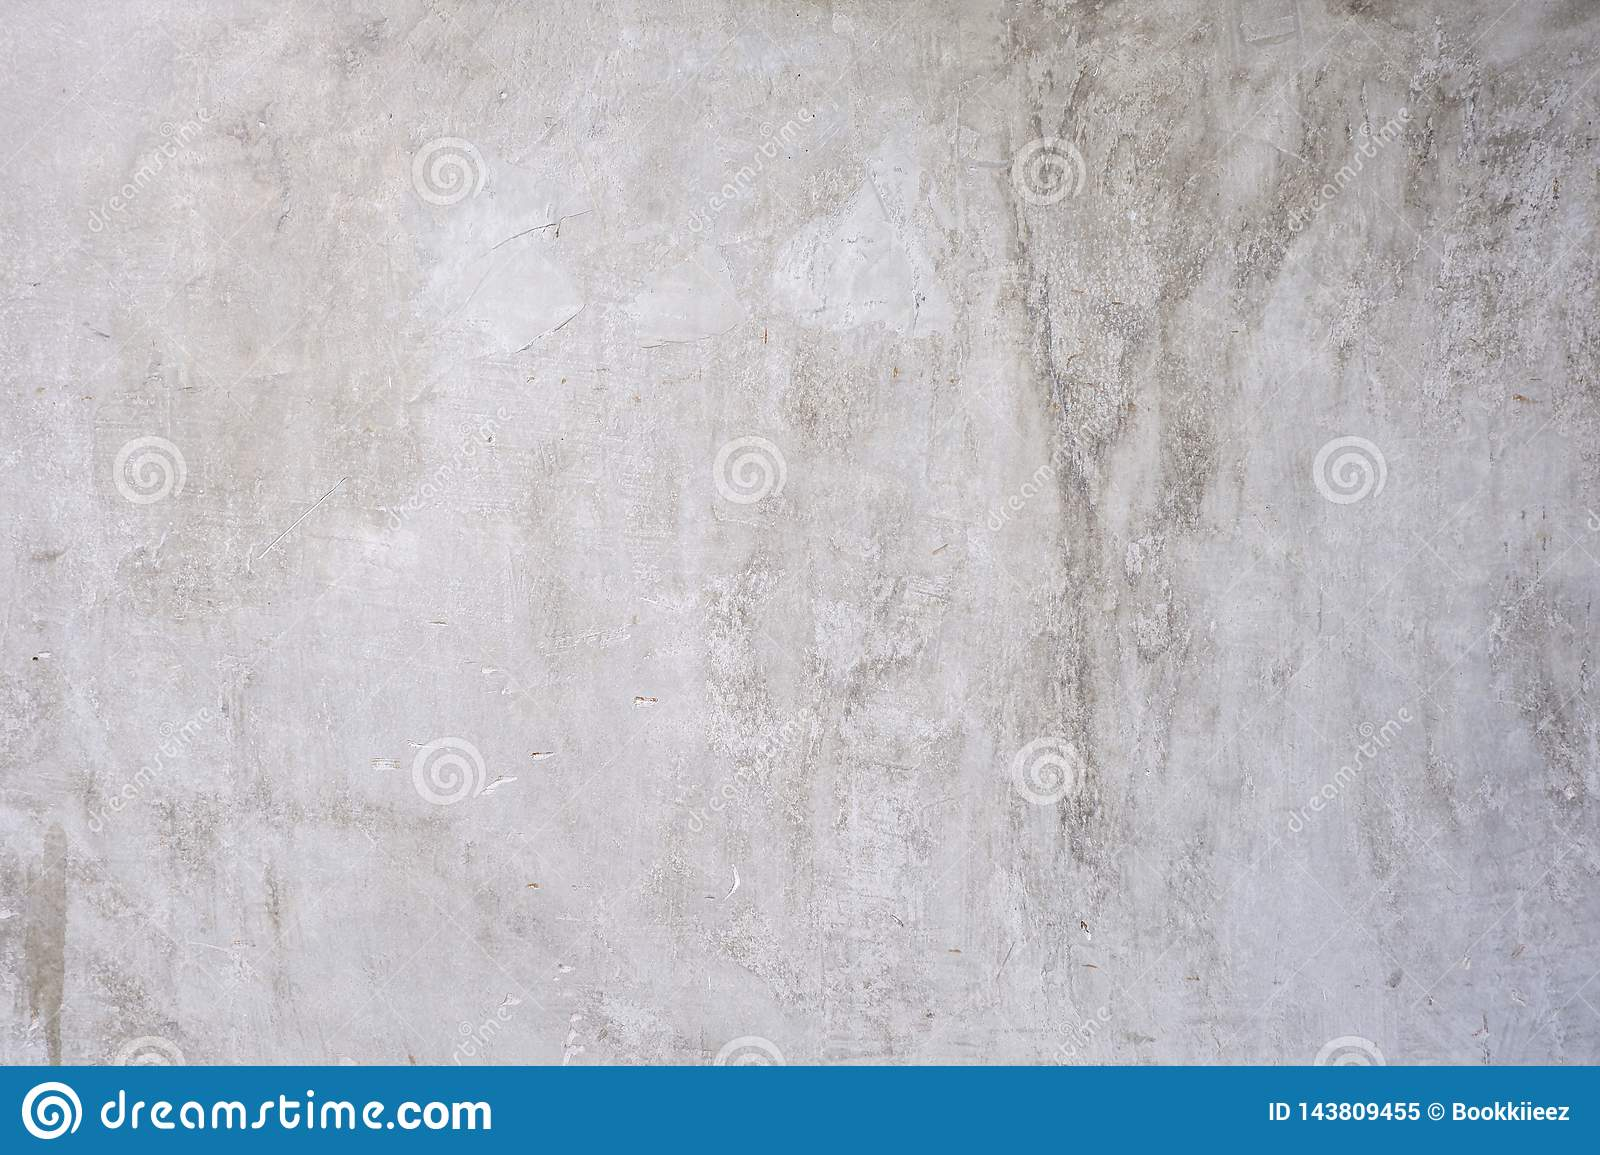 Old and dirty cement wall texture background.